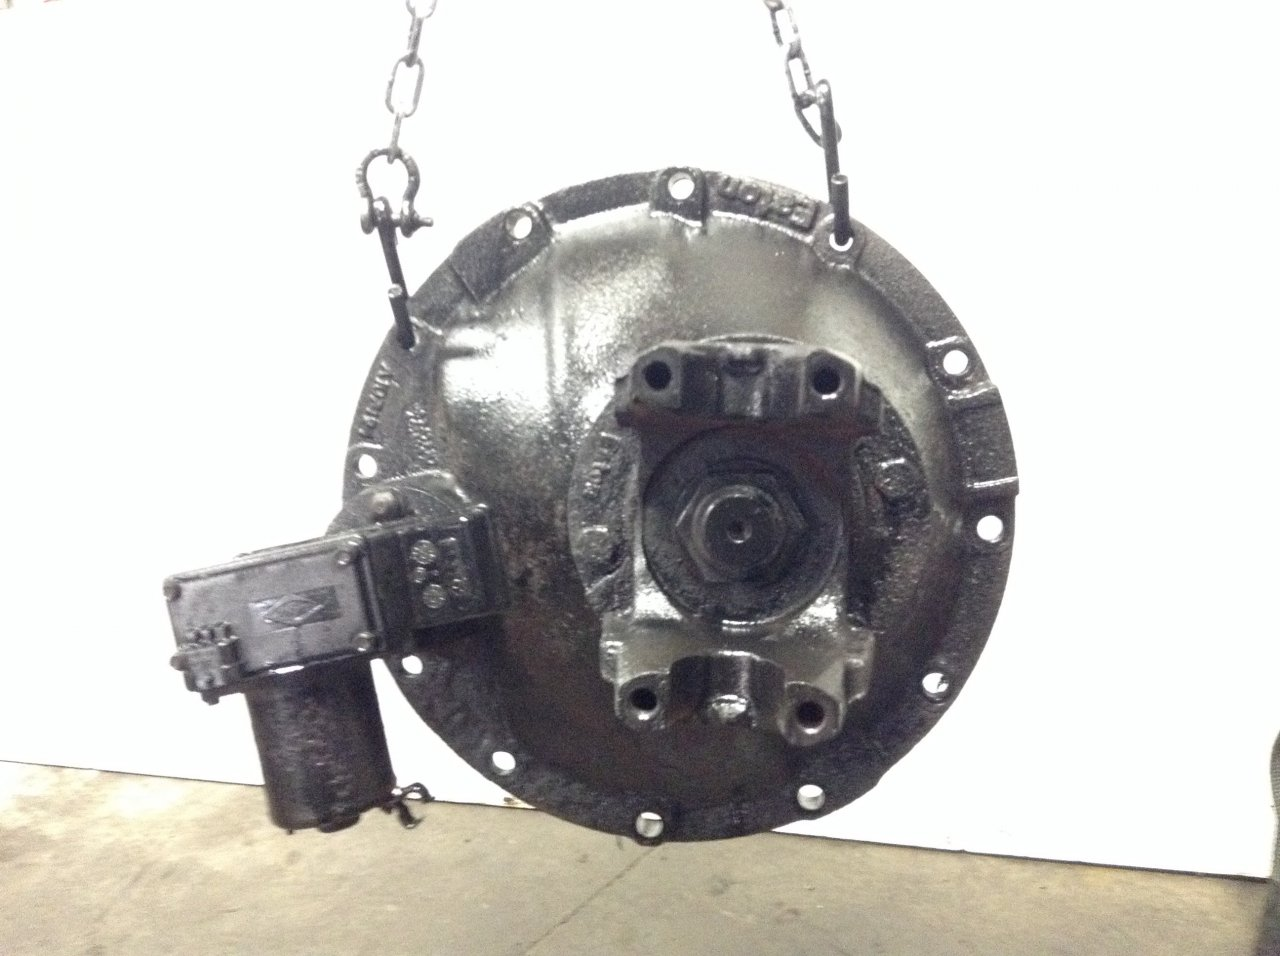 Eaton 22133 Rear Differential Assembly - A107494